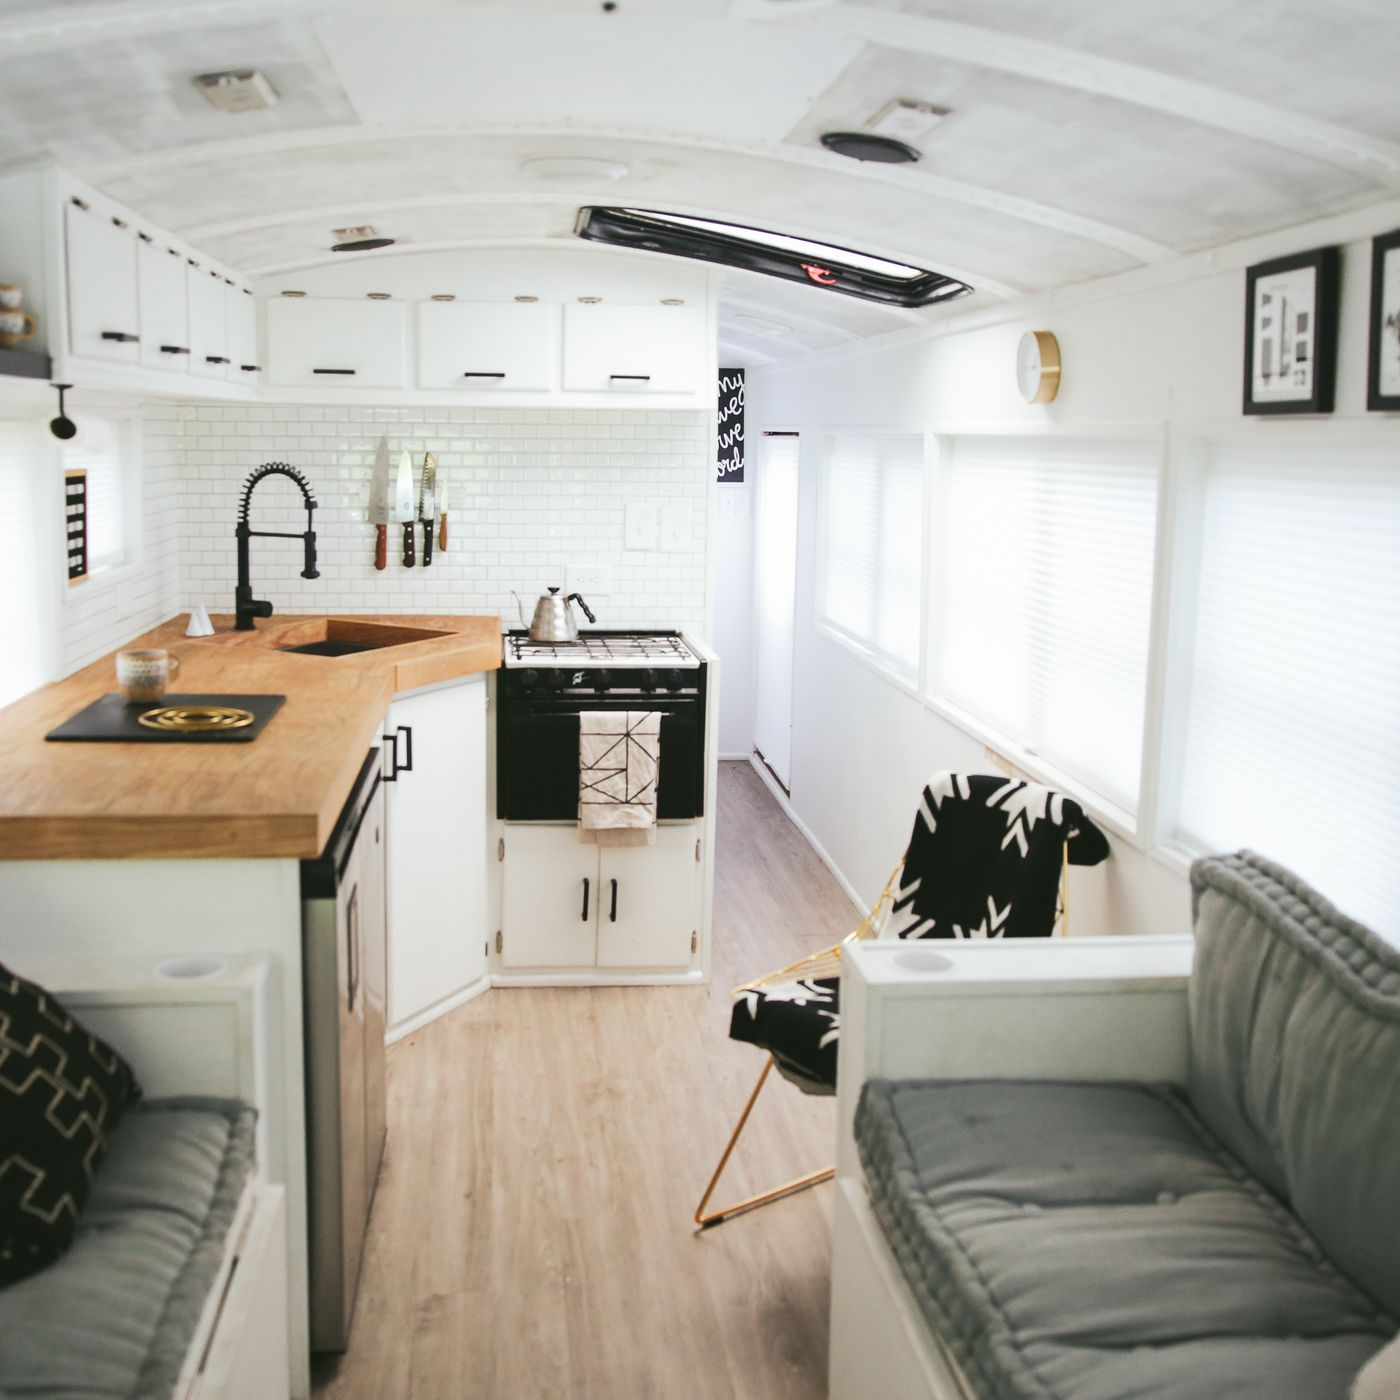 DIY camper conversion: 5 surprising vehicles for a home on wheels